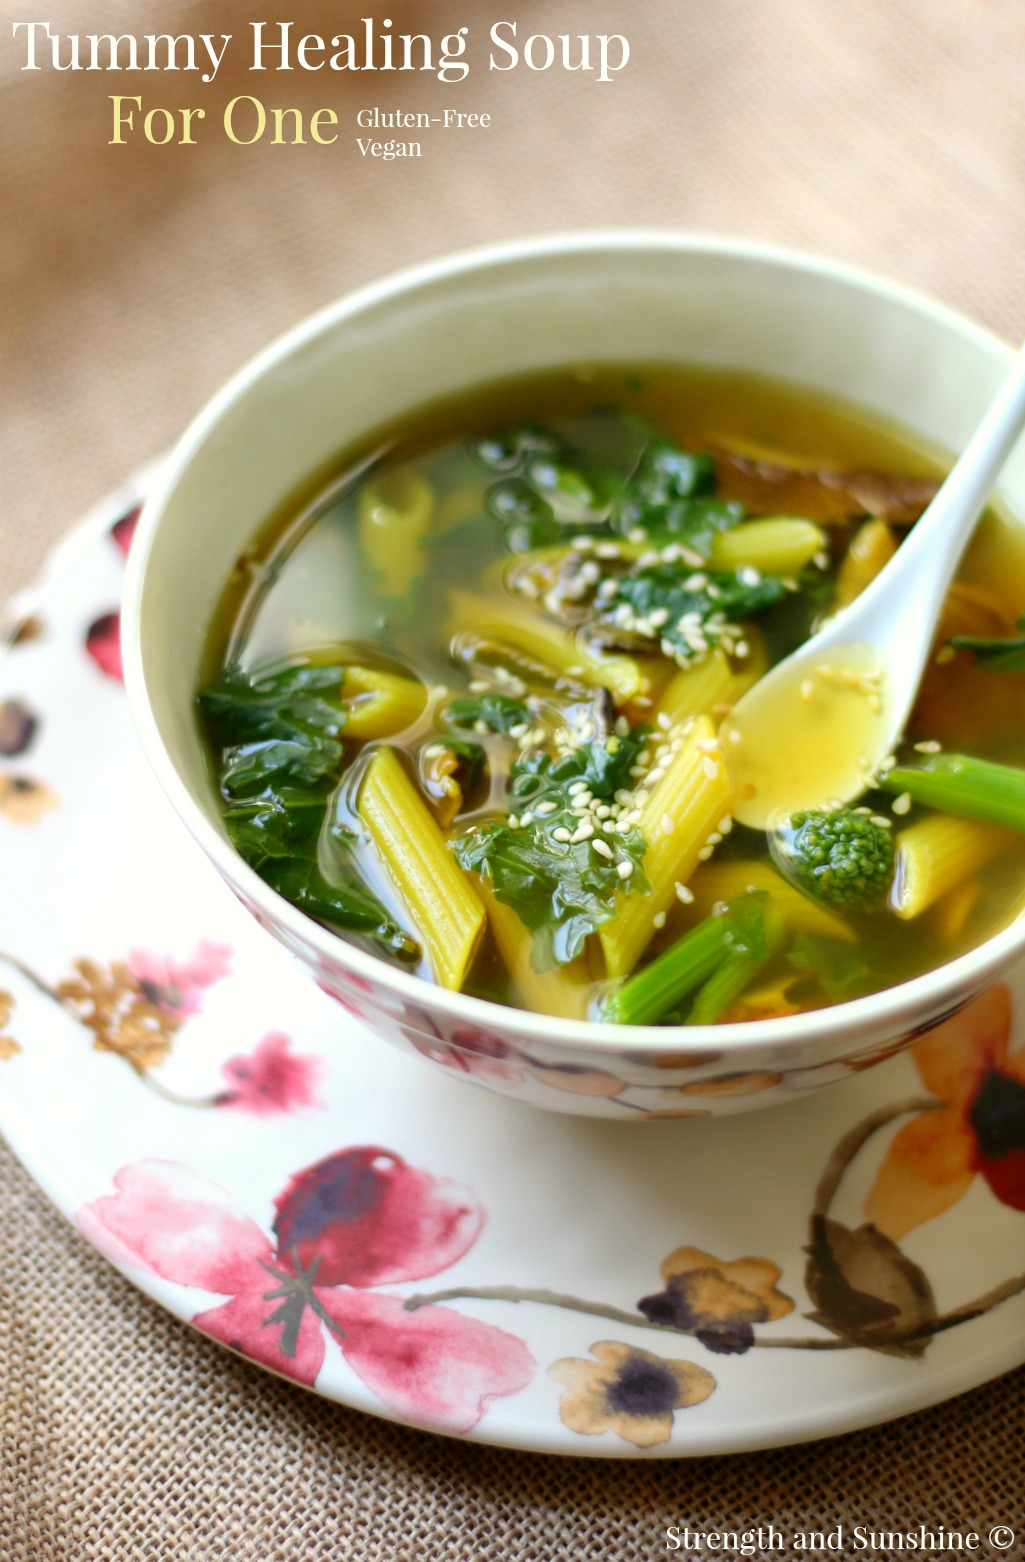 Tummy Healing Soup for One from Strength and Sunshine